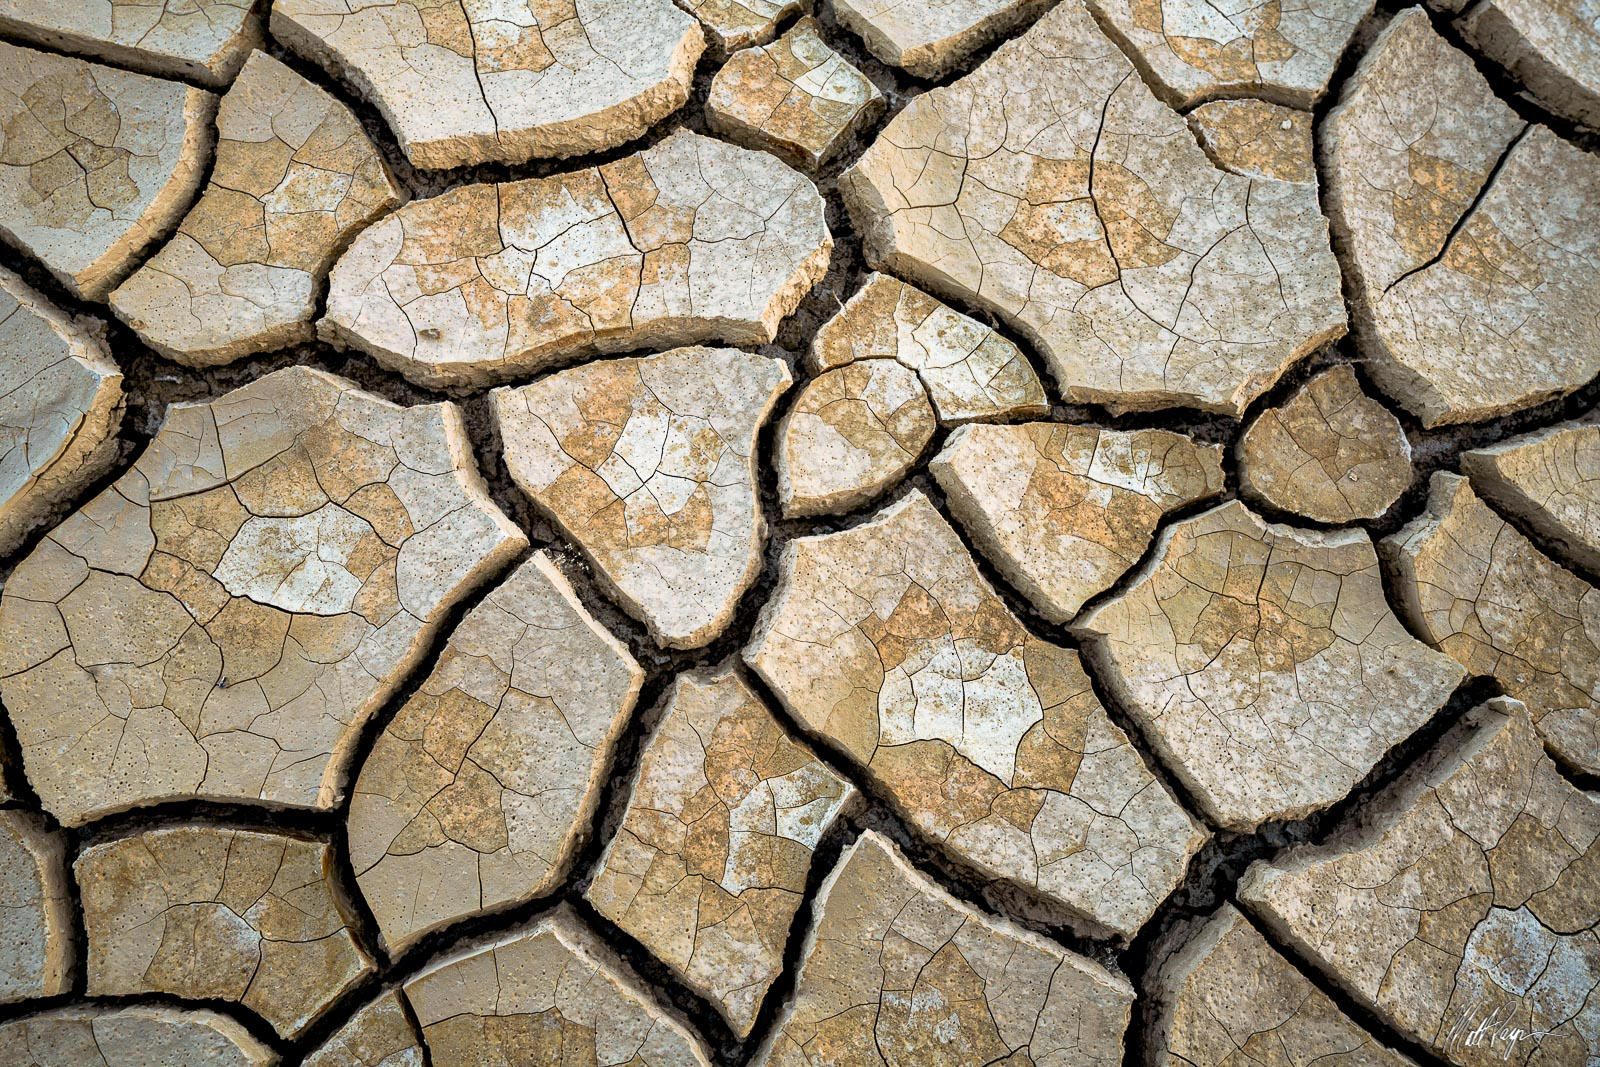 The variety of mud tiles found in the desert can sometimes be an overwhelming thing as a nature photographer. Every few feet...